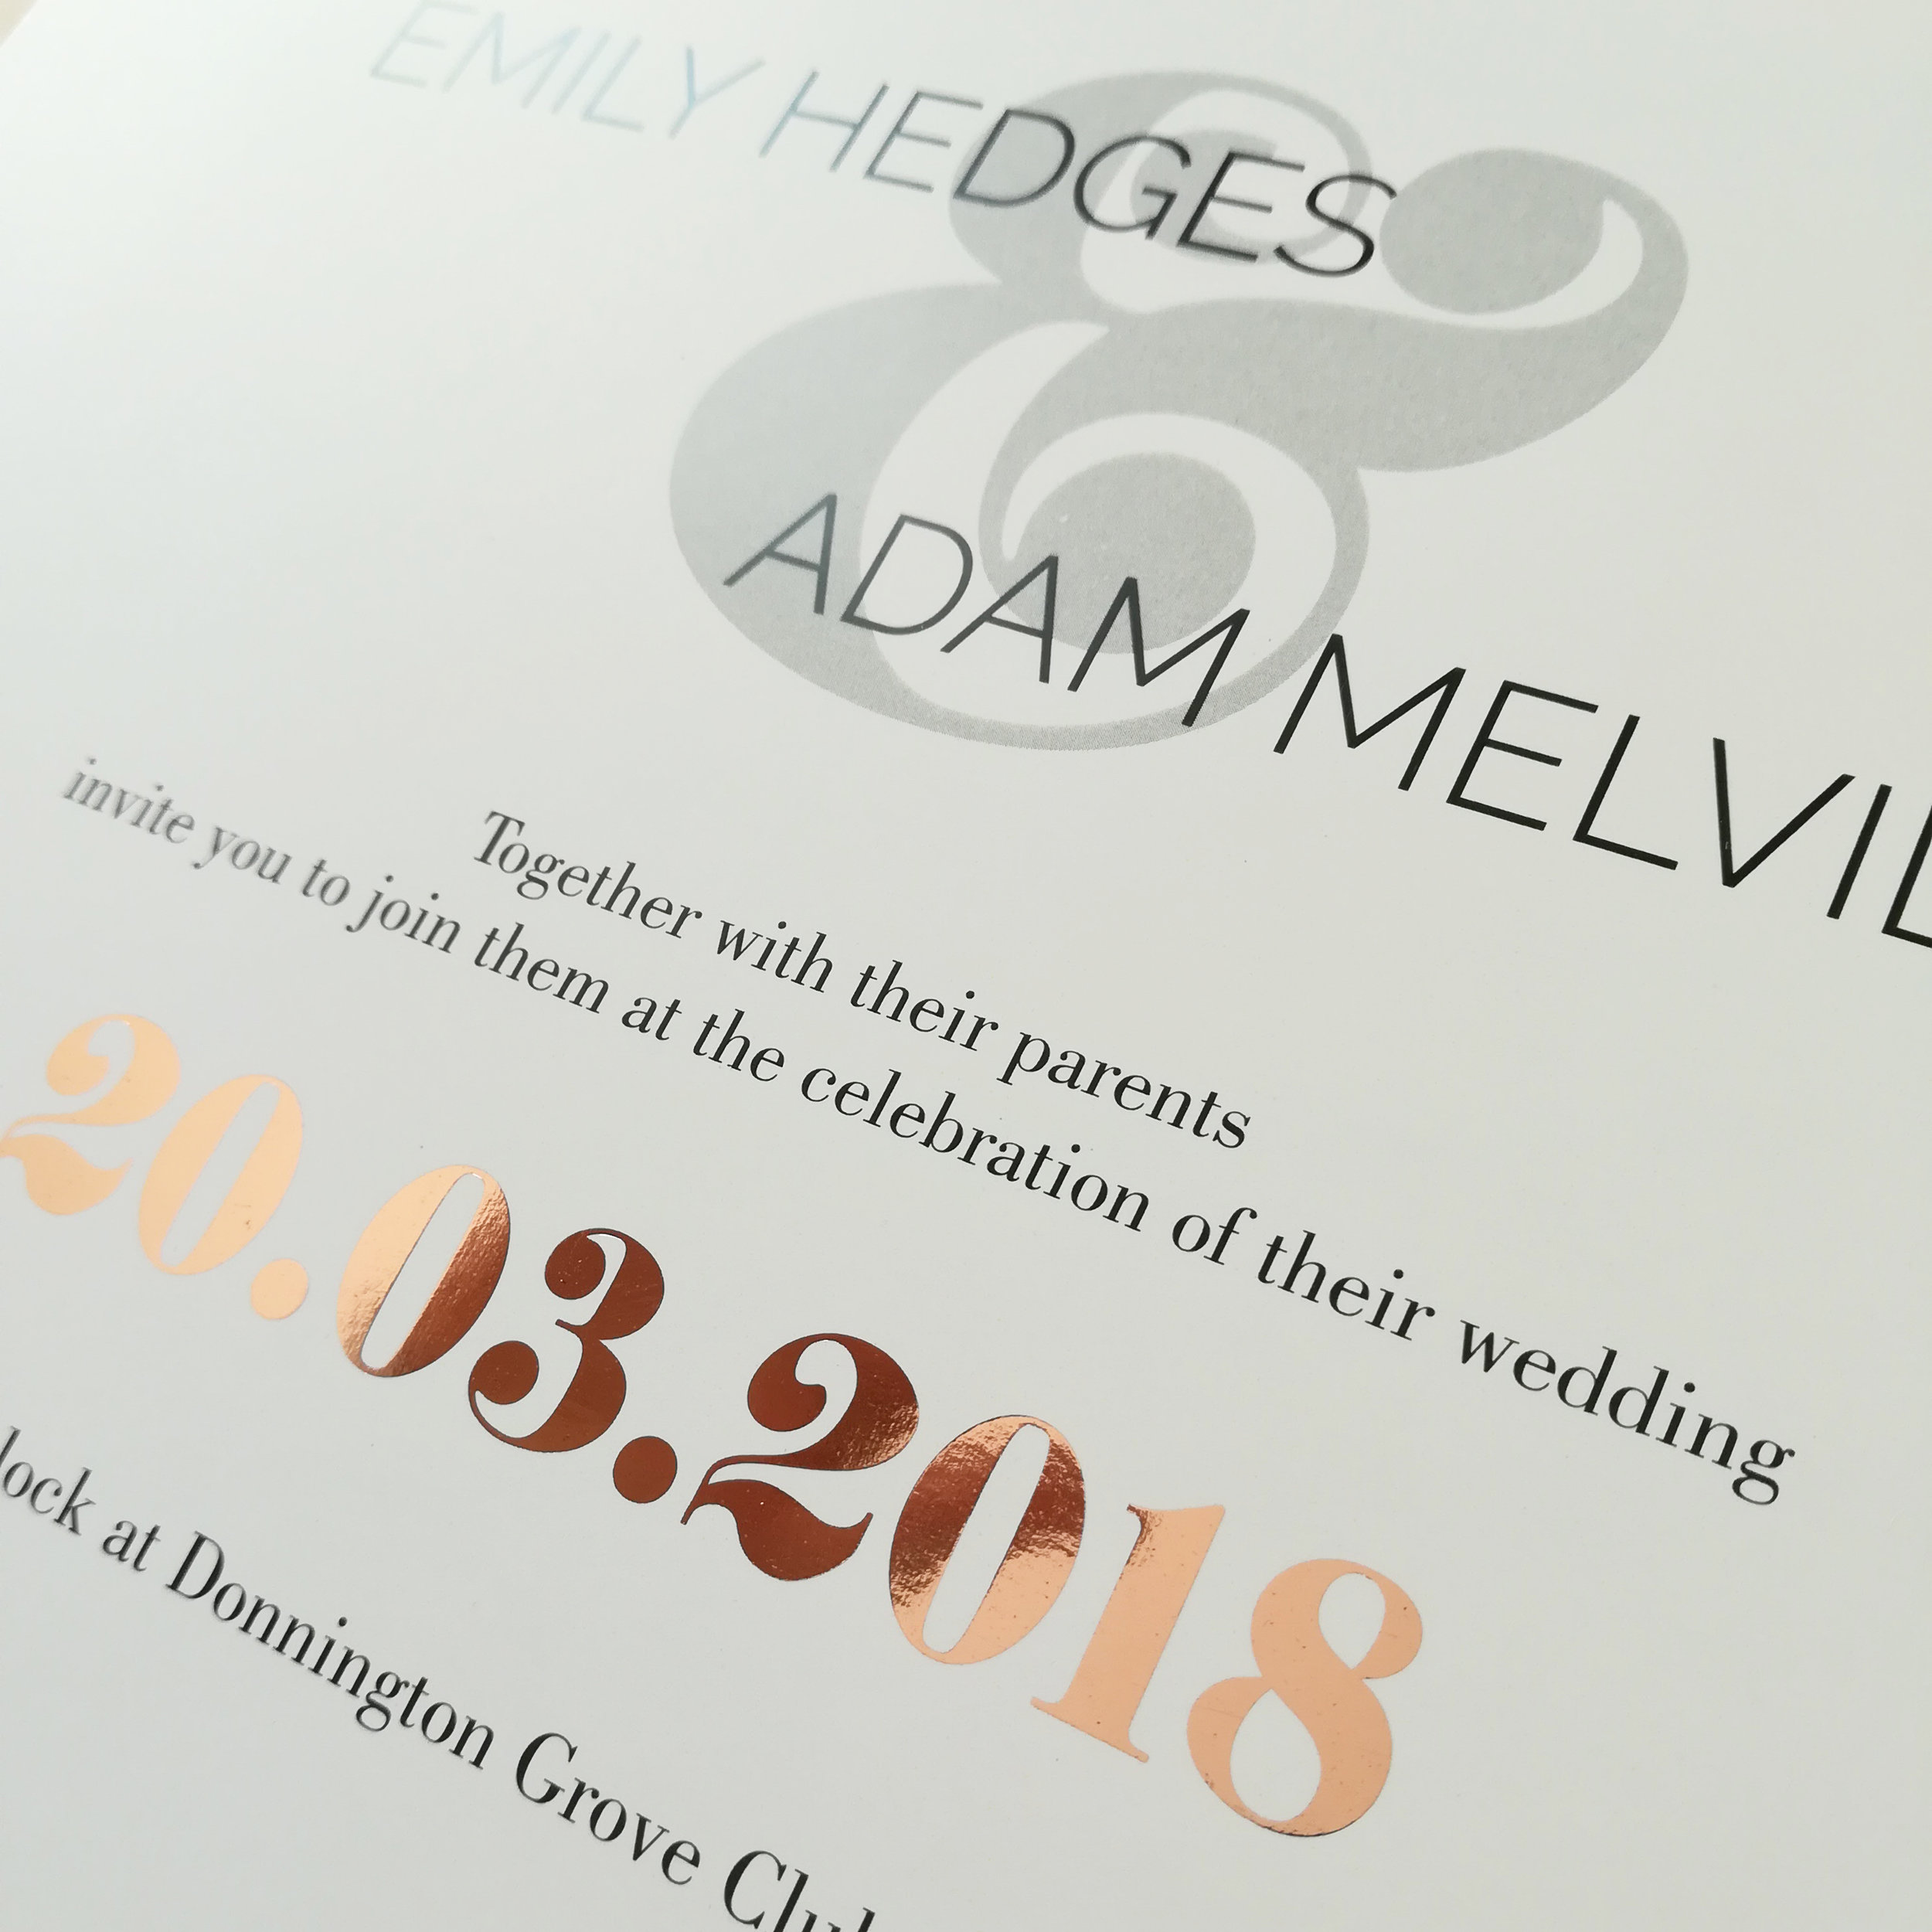 #Hedges - Rose Gold Foil on Coated Paper